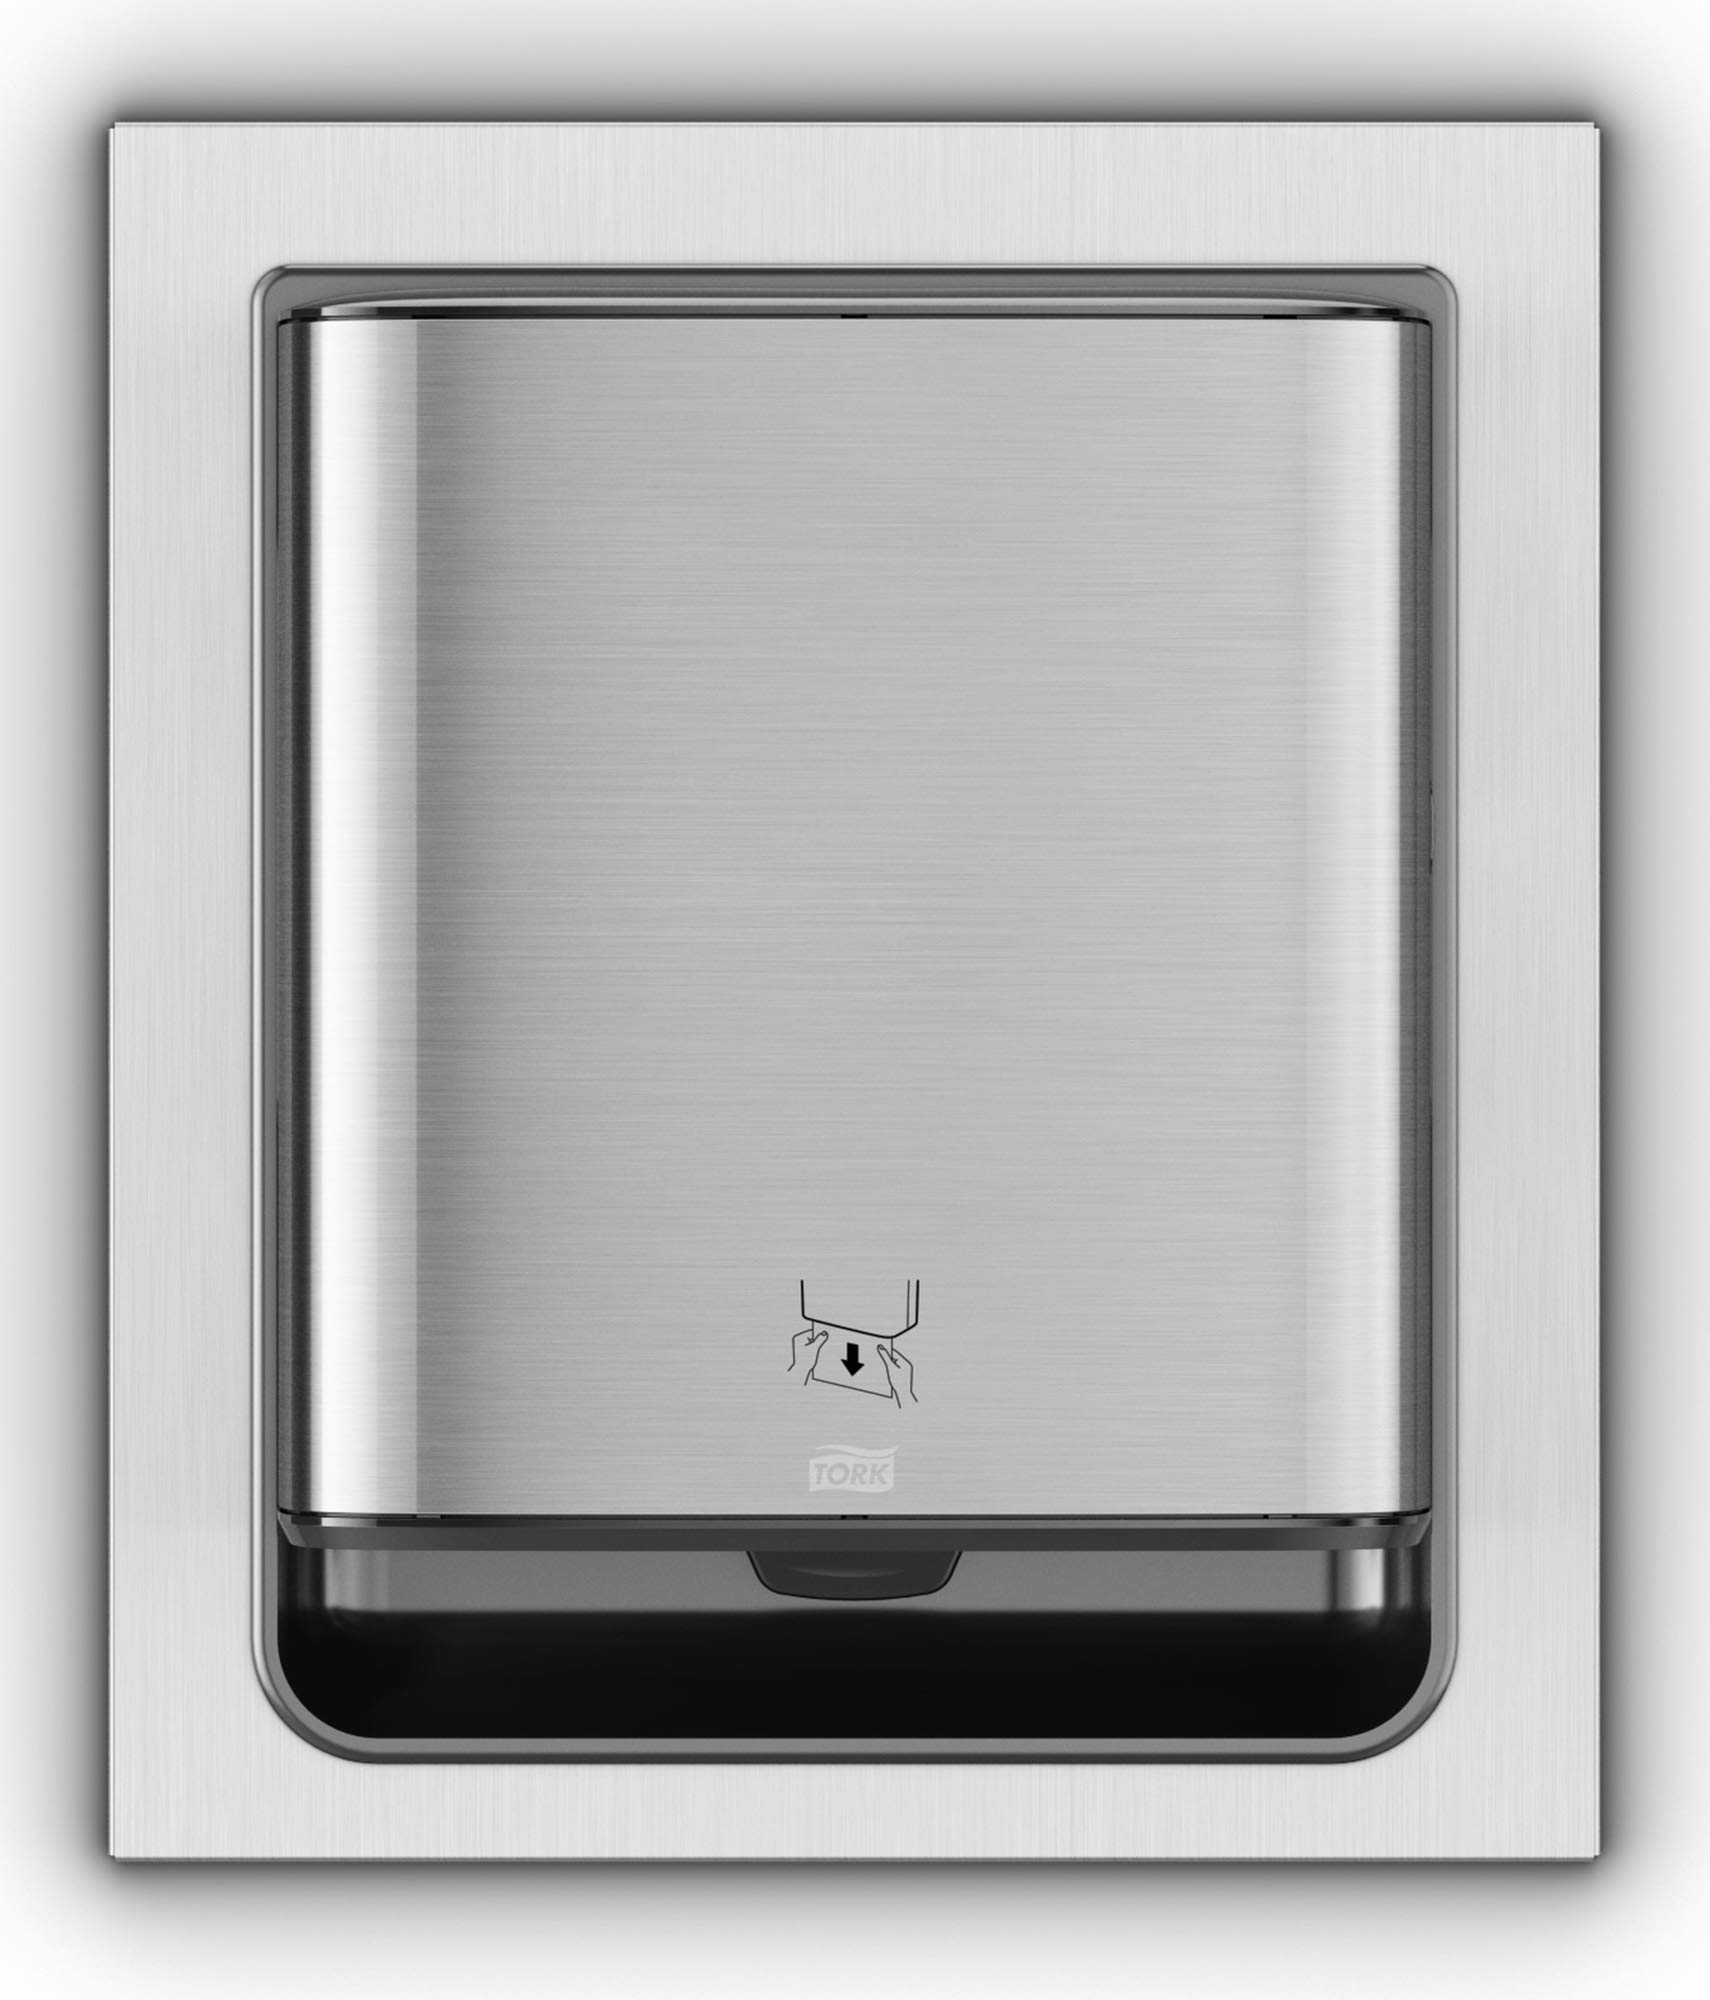 Tork 461023 Image Design Matic Paper Hand Towel Roll Dispenser, in-Wall Recessed, 20.55'' Height x 17.64'' Width x 7.87'' Depth, Stainless Steel (Case of 1 Dispenser)